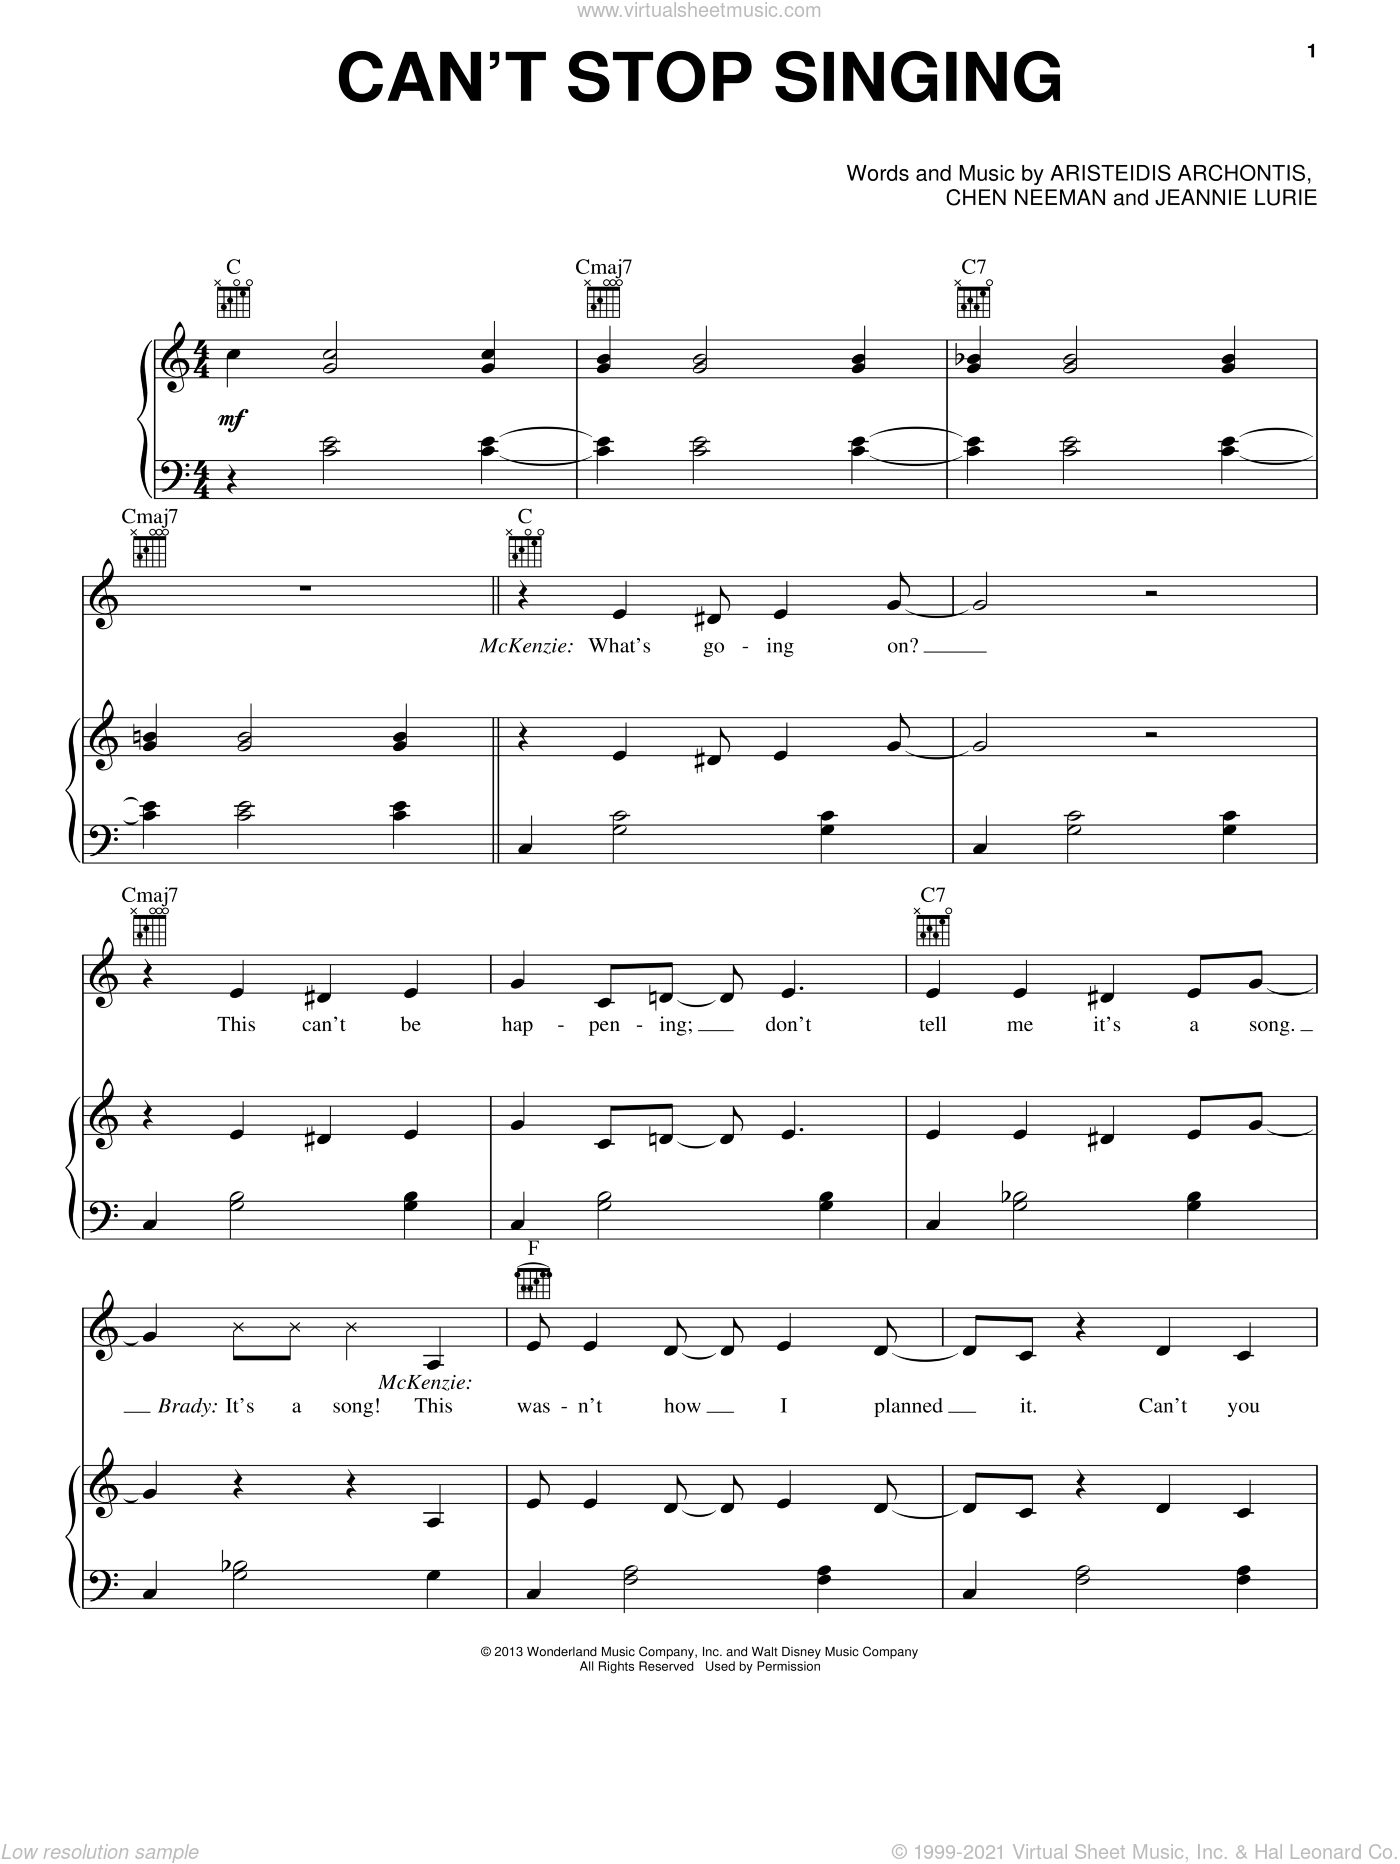 Can't Stop Singing sheet music for voice, piano or guitar by Jeannie Lurie